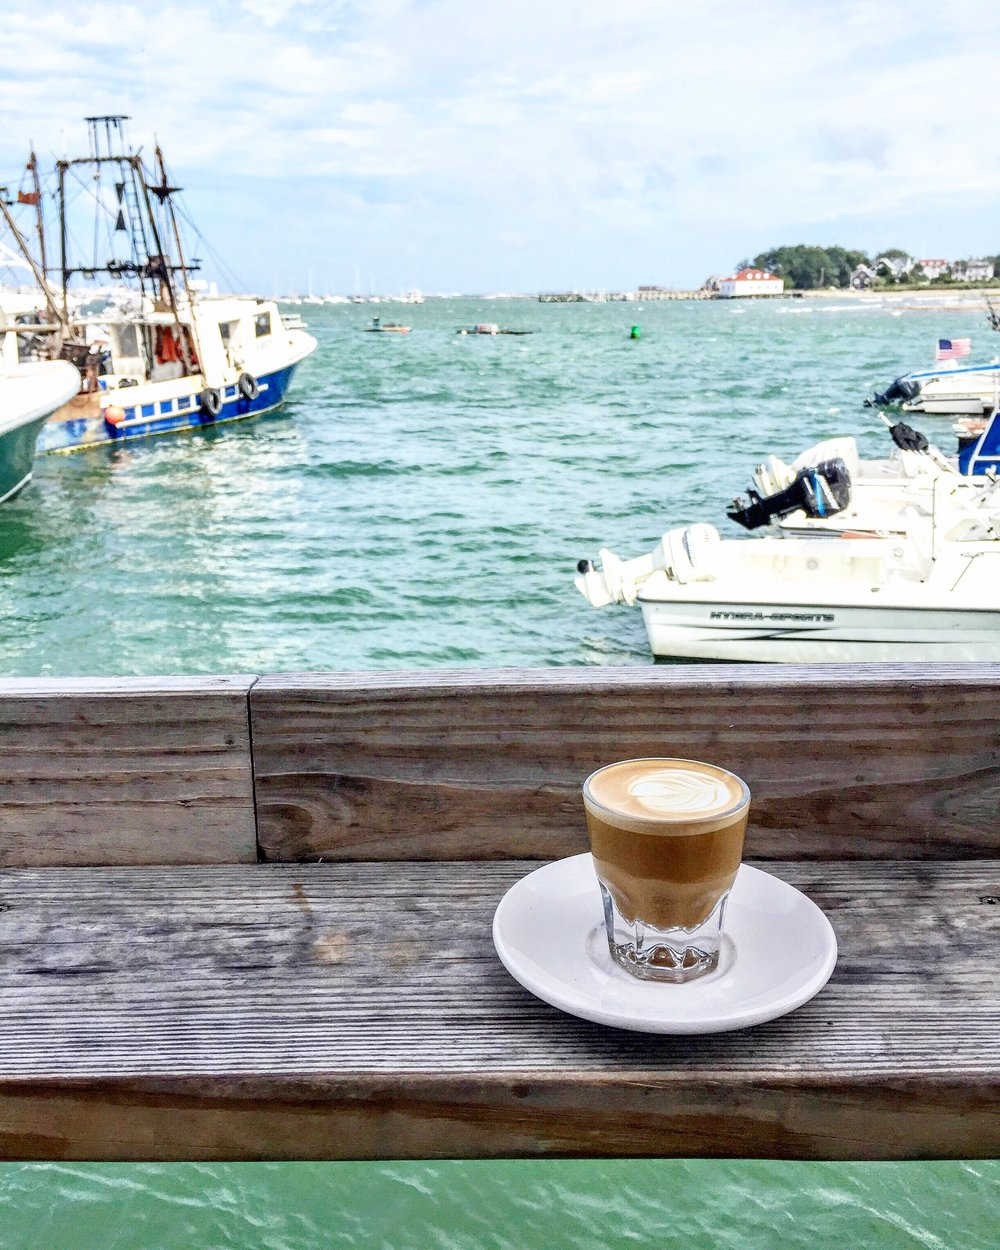 Cortado with a view in Scituate, MA